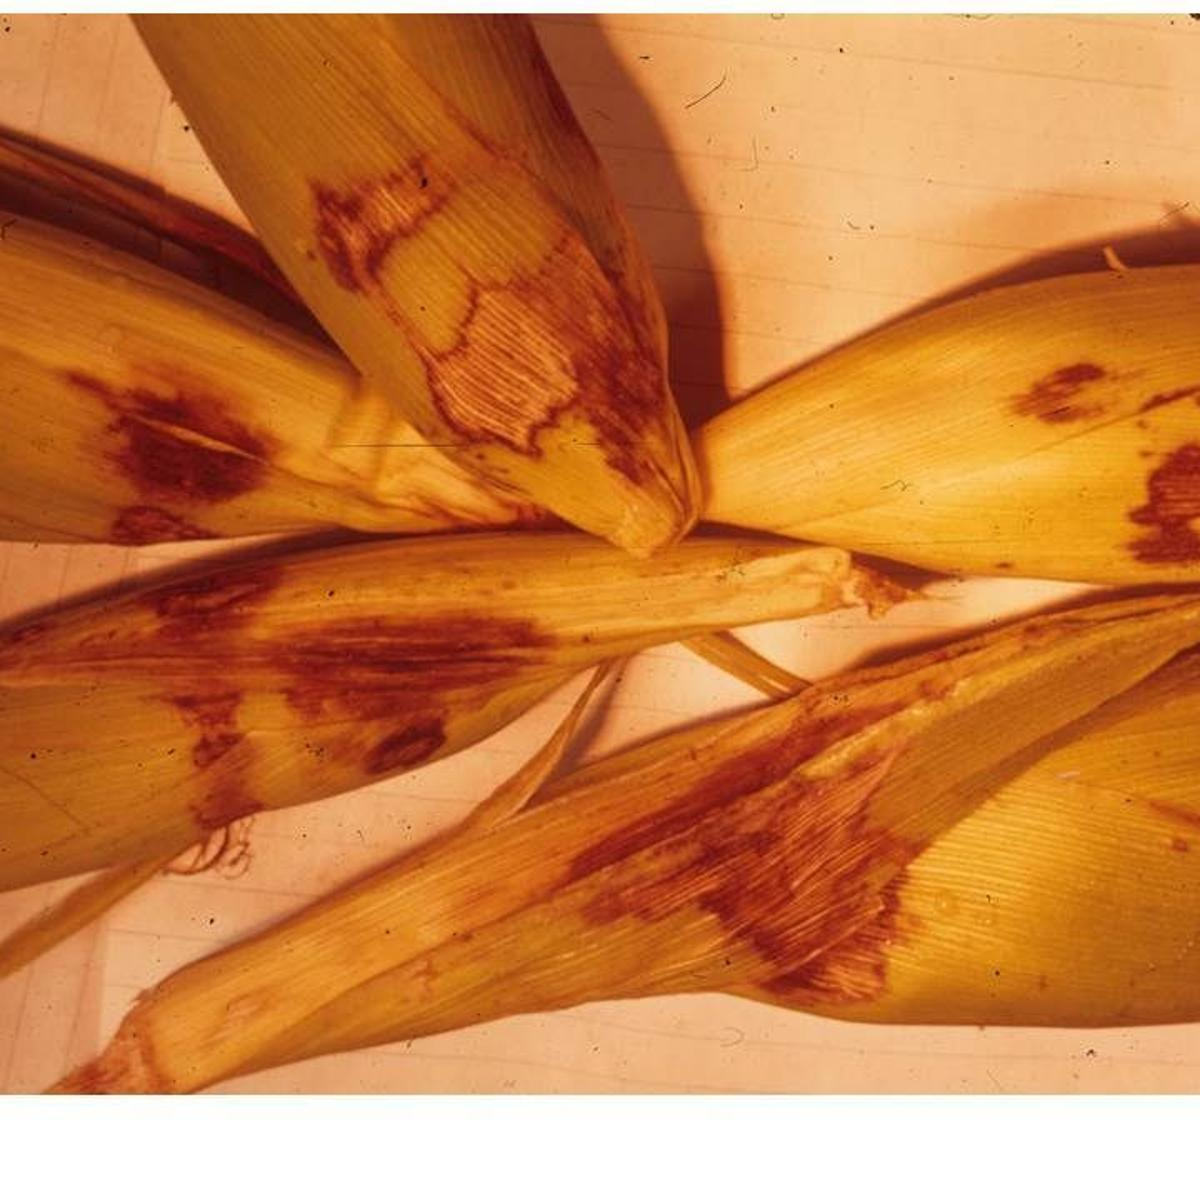 The Southern Corn Leaf Blight Epidemic